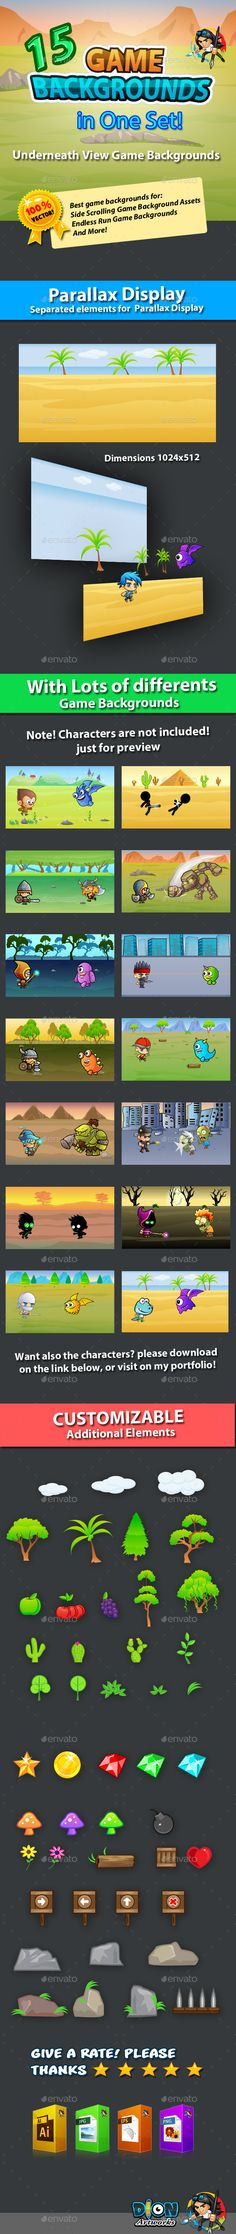 Buy 15 Underneath Game Backgrounds in One Set by pasilan on GraphicRiver. Game Backgrounds your mobile game assets This assets is for developers who want to create their mobile game apps for. Magazine Design, Game Design, Layout Design, Android Animation, Free Game Assets, Pixel Art Games, Game Background, Game Icon, Game App